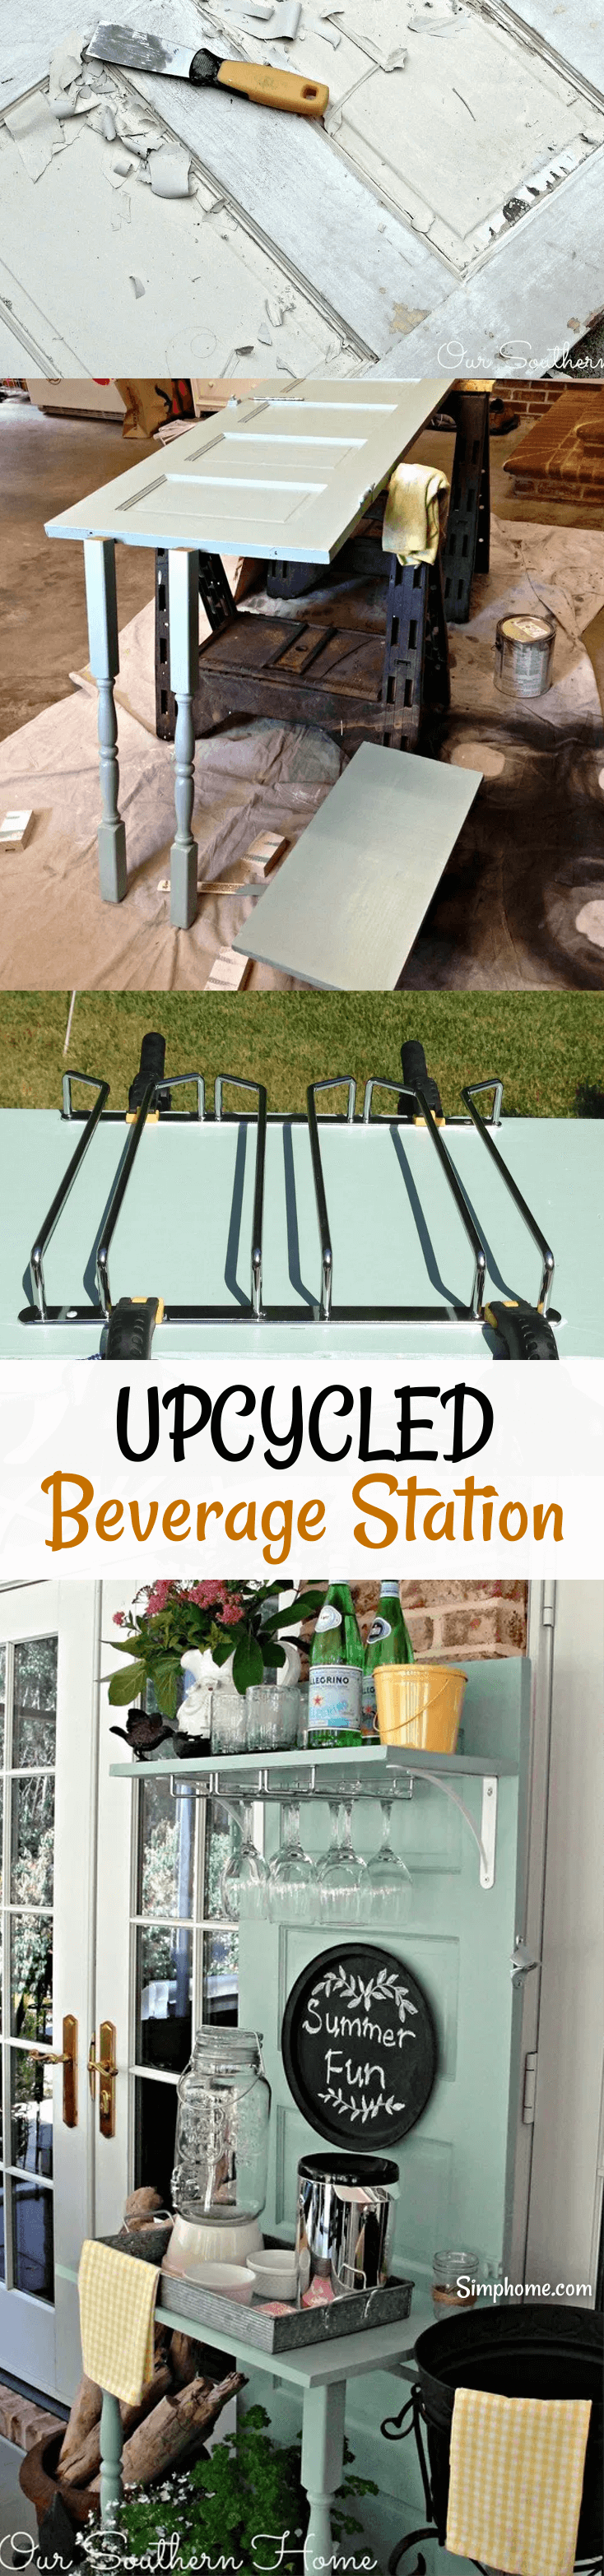 Upcycled Beverage Station 2 simphome com p